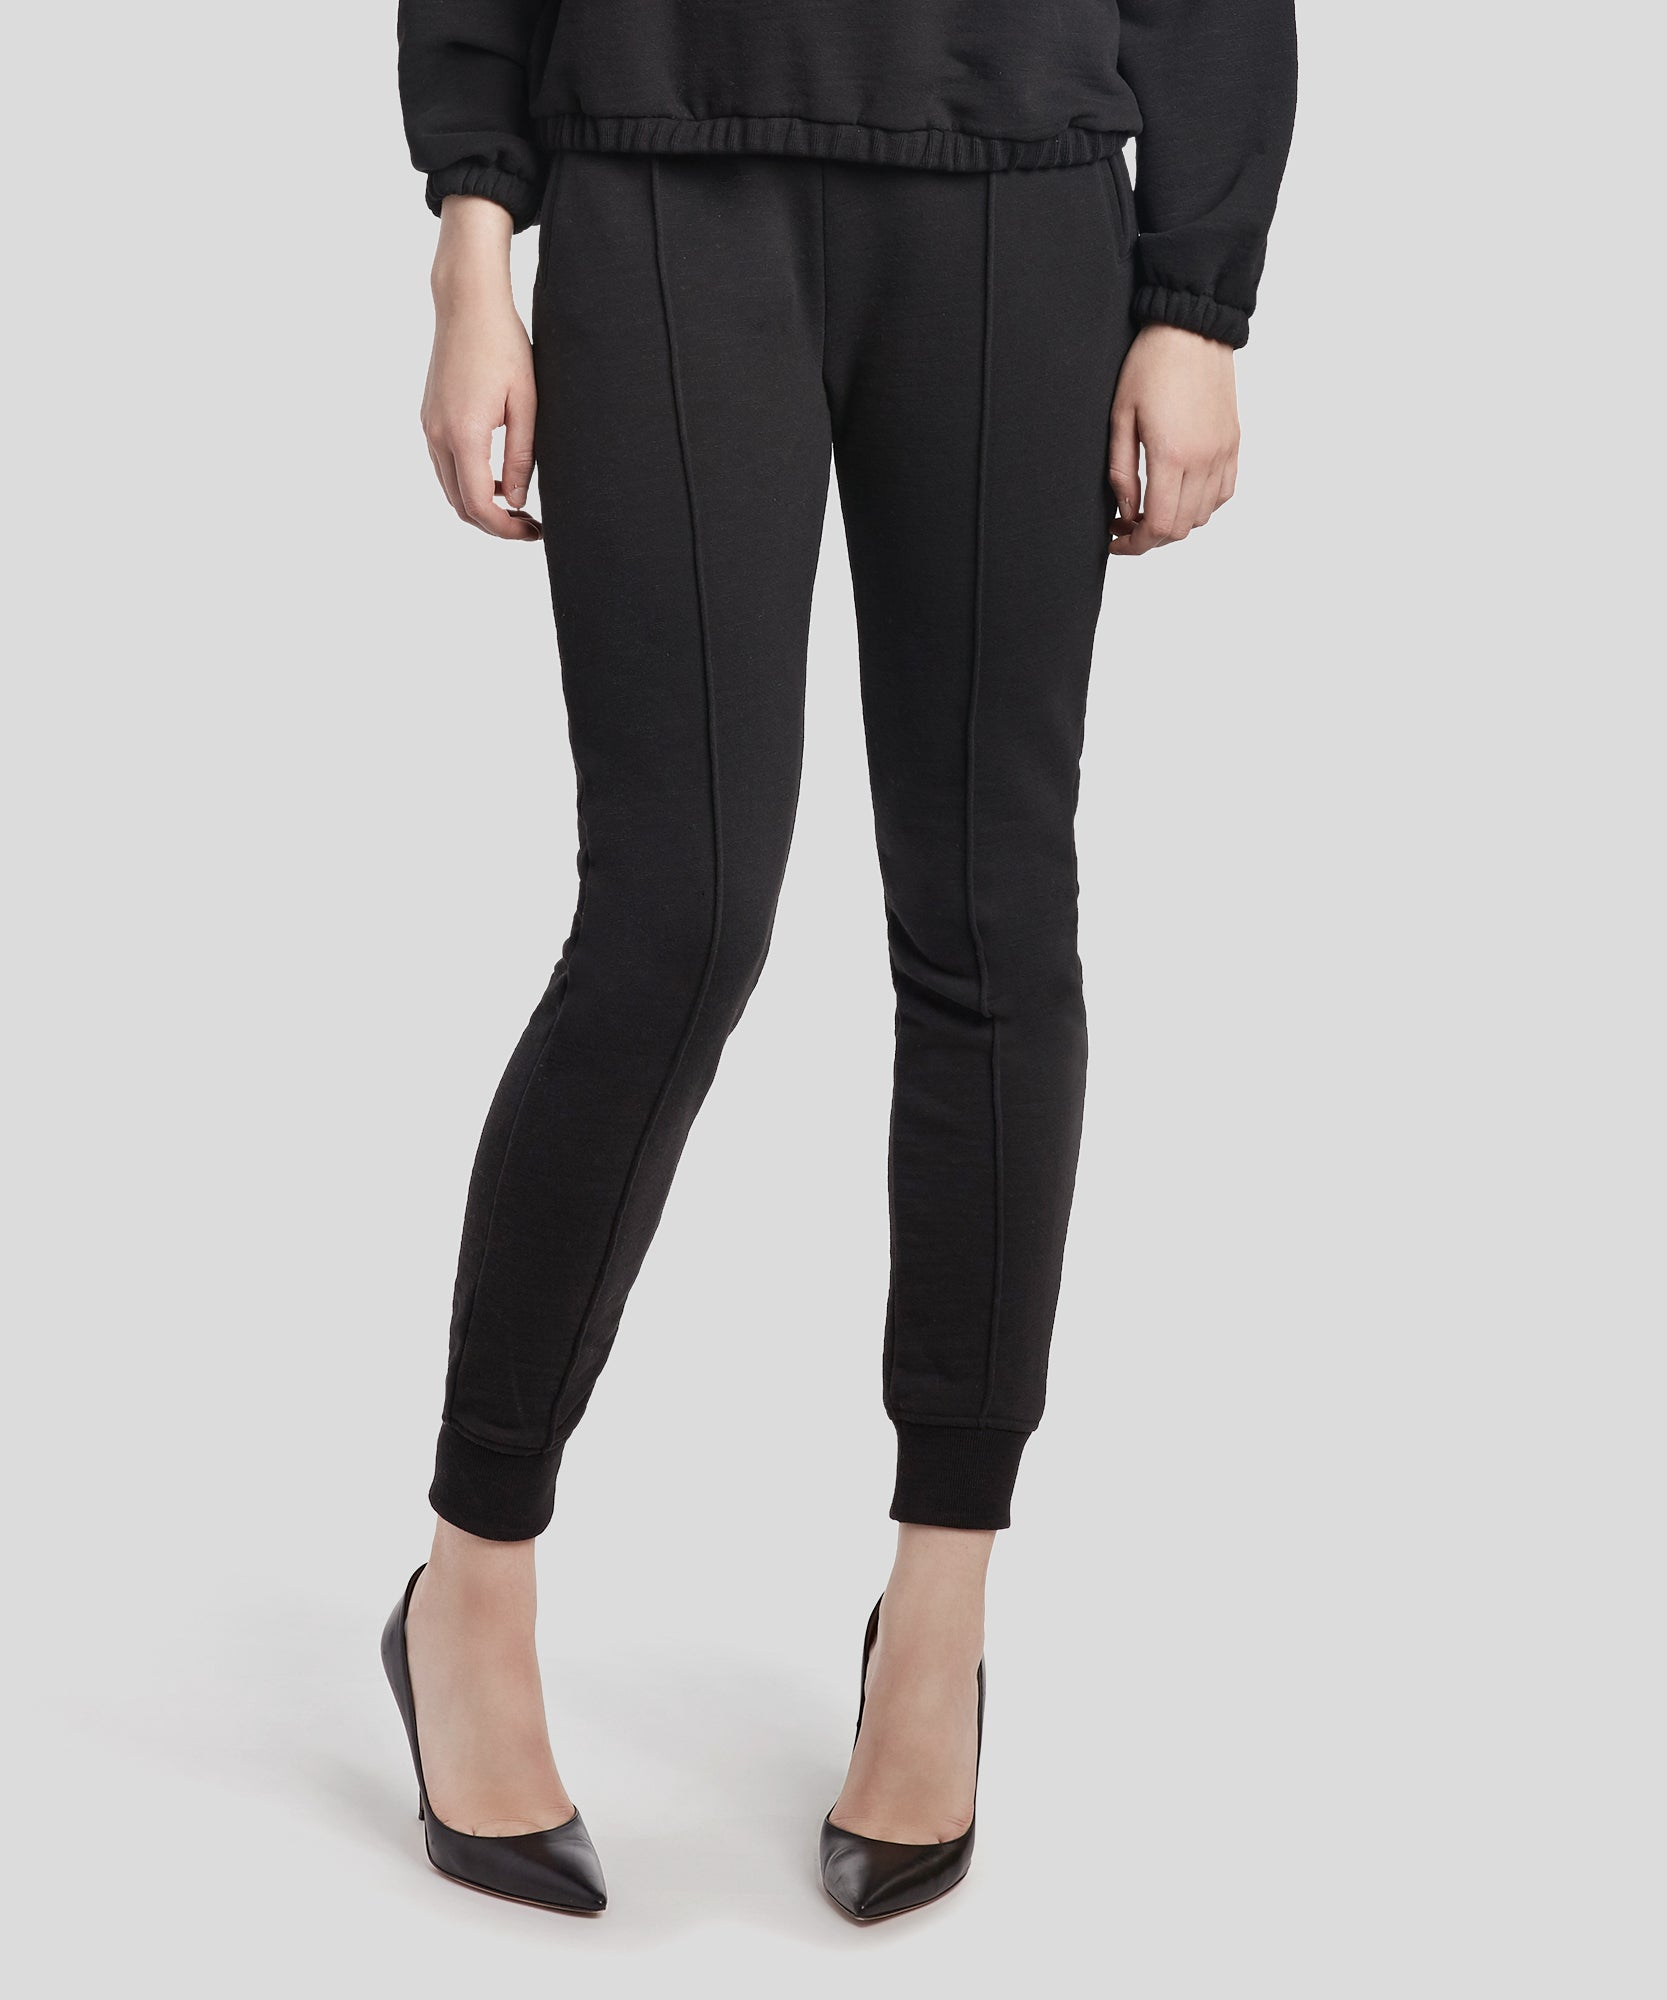 Black French Terry Pintuck Sweatpants - Women's Luxe Loungewear by ATM Anthony Thomas Melillo